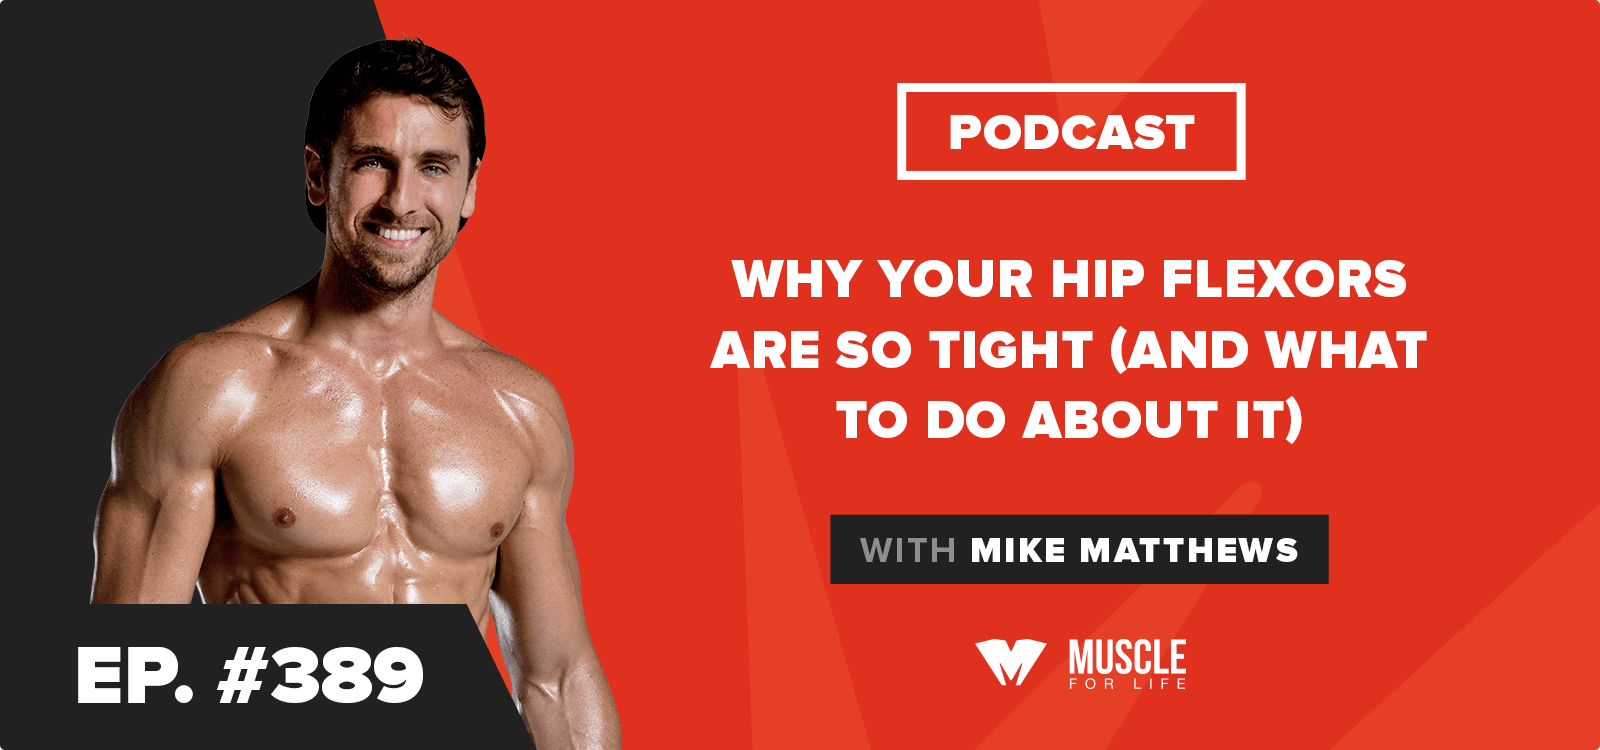 Why Your Hip Flexors Are So Tight (and What to Do About It)